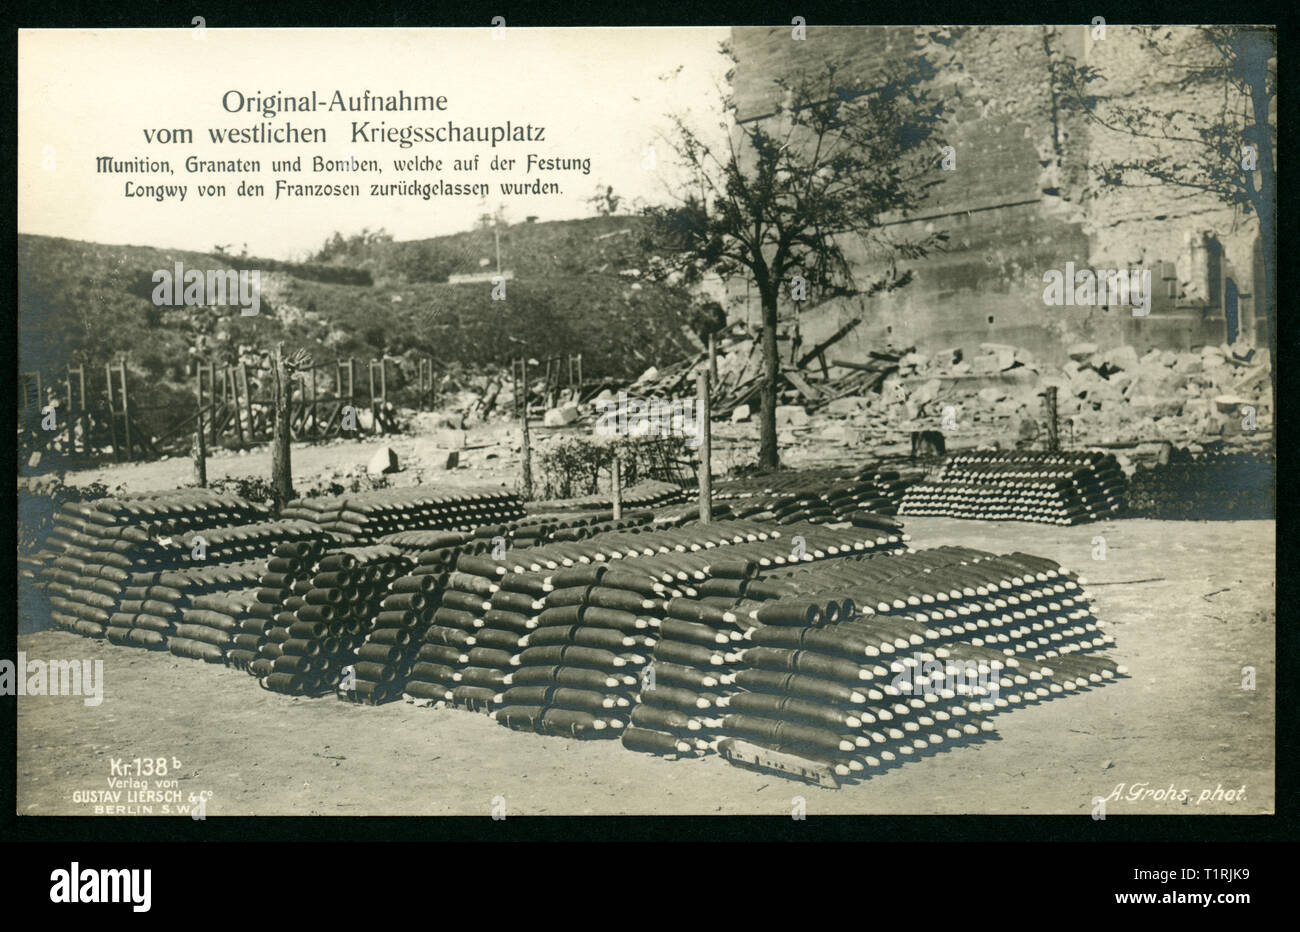 Germany, France, Meurthe-et Moselle, Grand Est, Longwy, postcard, propaganda, WW I, original text: 'Original photo from the Western theatre of war - munitions, grenades and bombs, which the French soldiers has left behind on the citadell Longwy ', photographer Alfred Grohs (1880-1935), published by Gustav Liersch and Co., Berlin (owner Siegfried Danziger, died 1941). , Additional-Rights-Clearance-Info-Not-Available - Stock Image